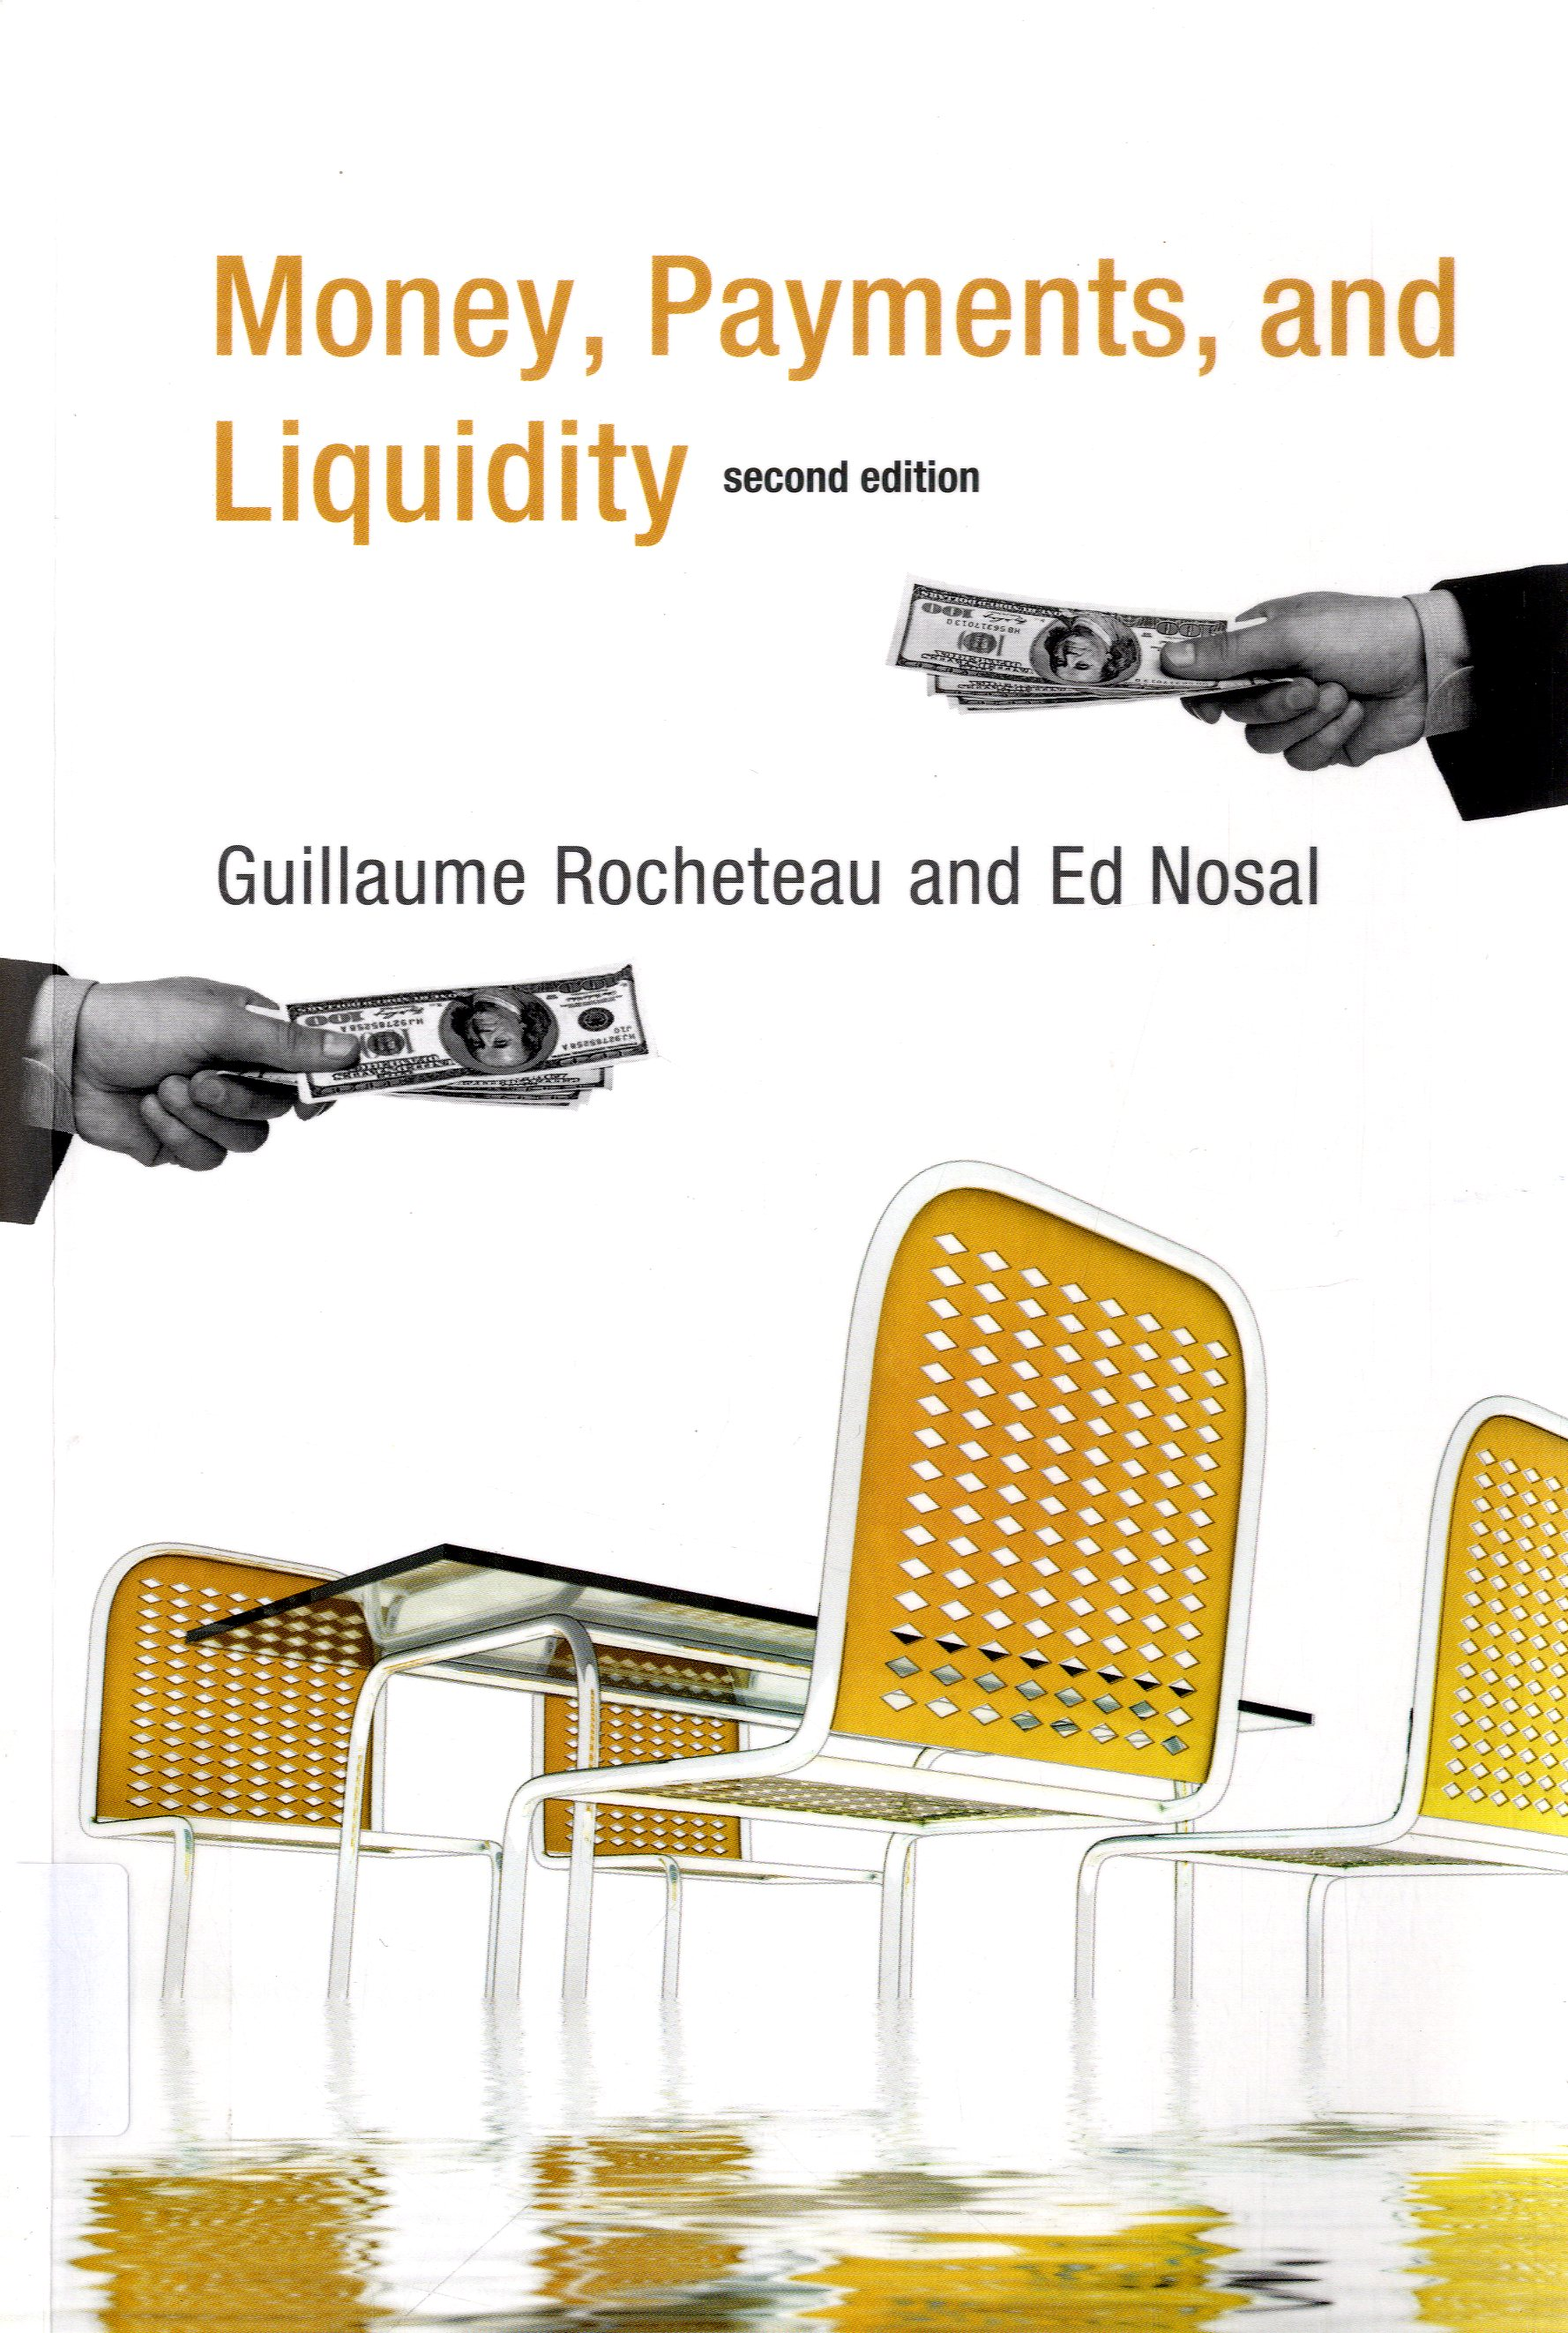 Money, Payments And Liquidity